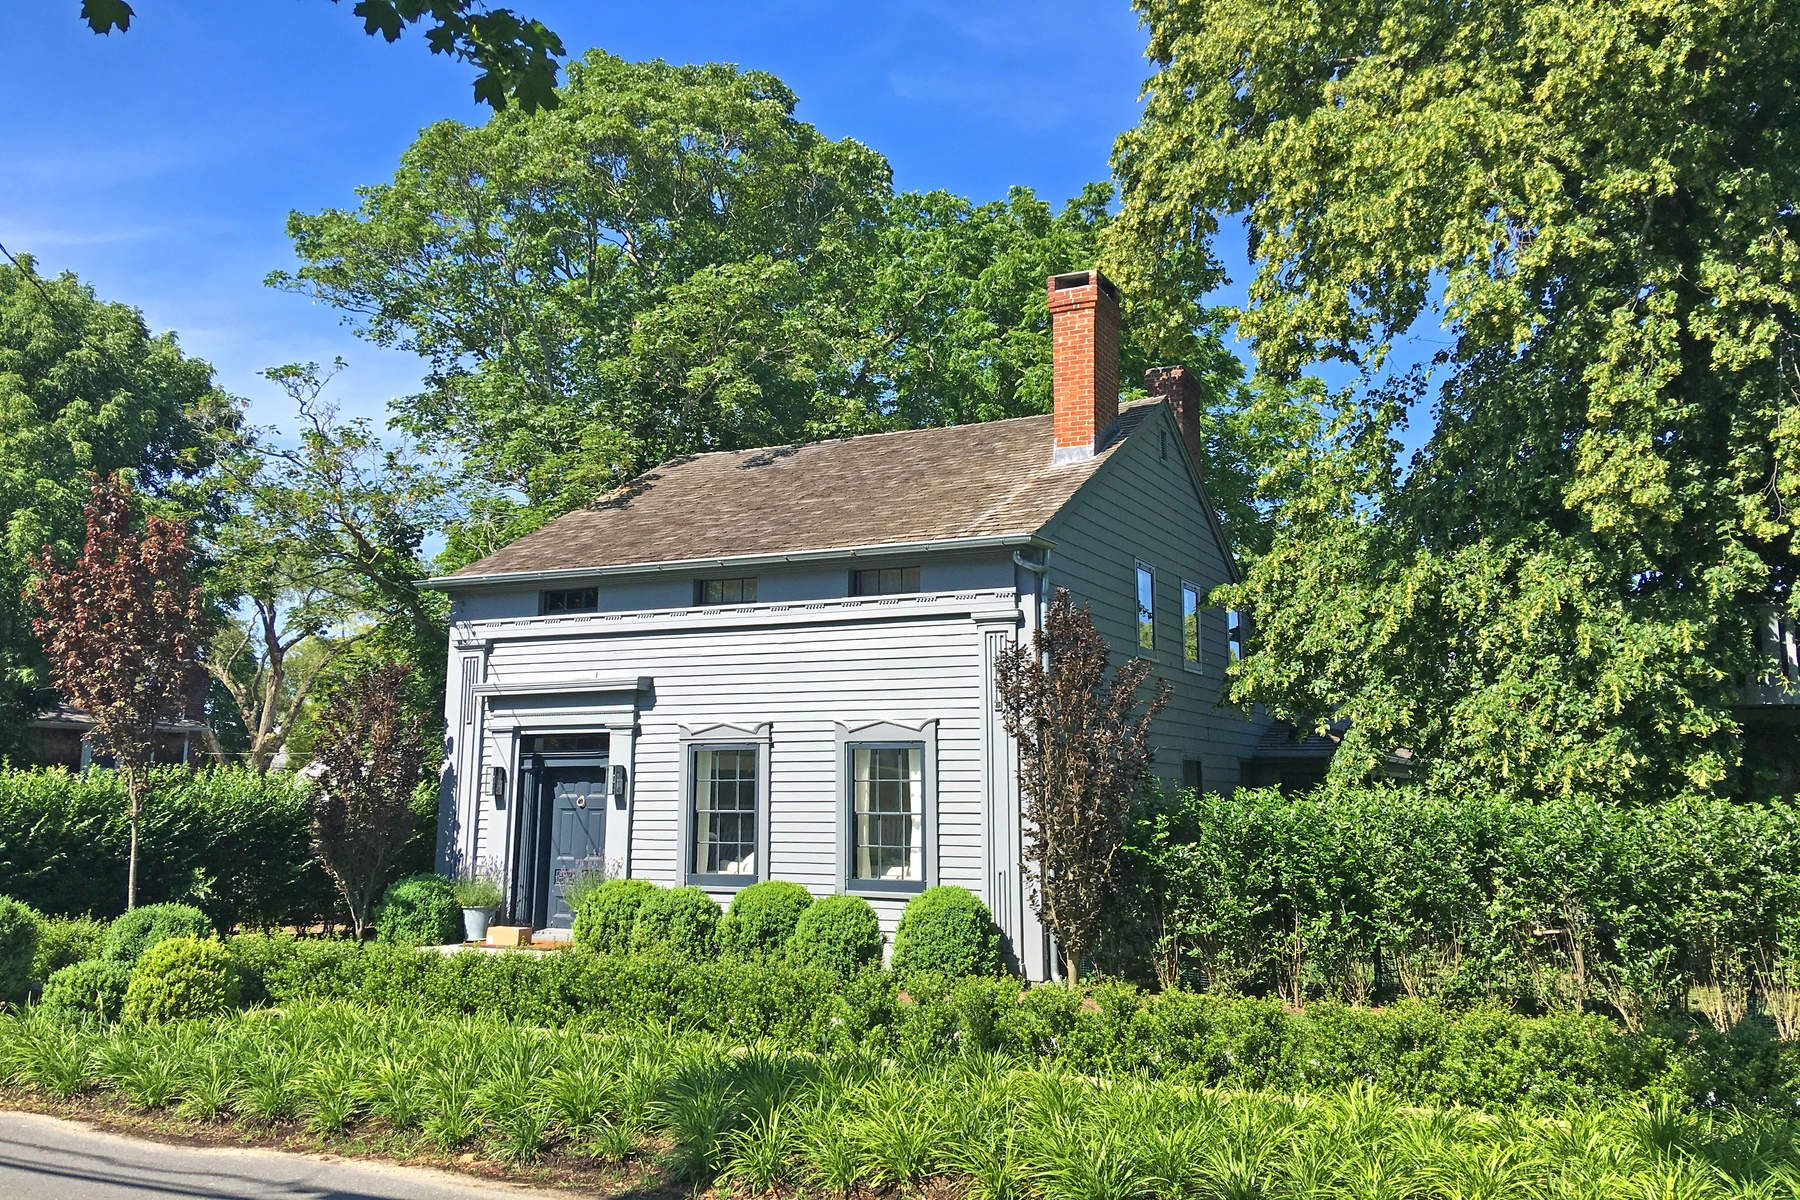 Single Family Home for Sale at Historic Section Of Sag Harbor Village 39 Suffolk Street Sag Harbor, New York 11963 United States